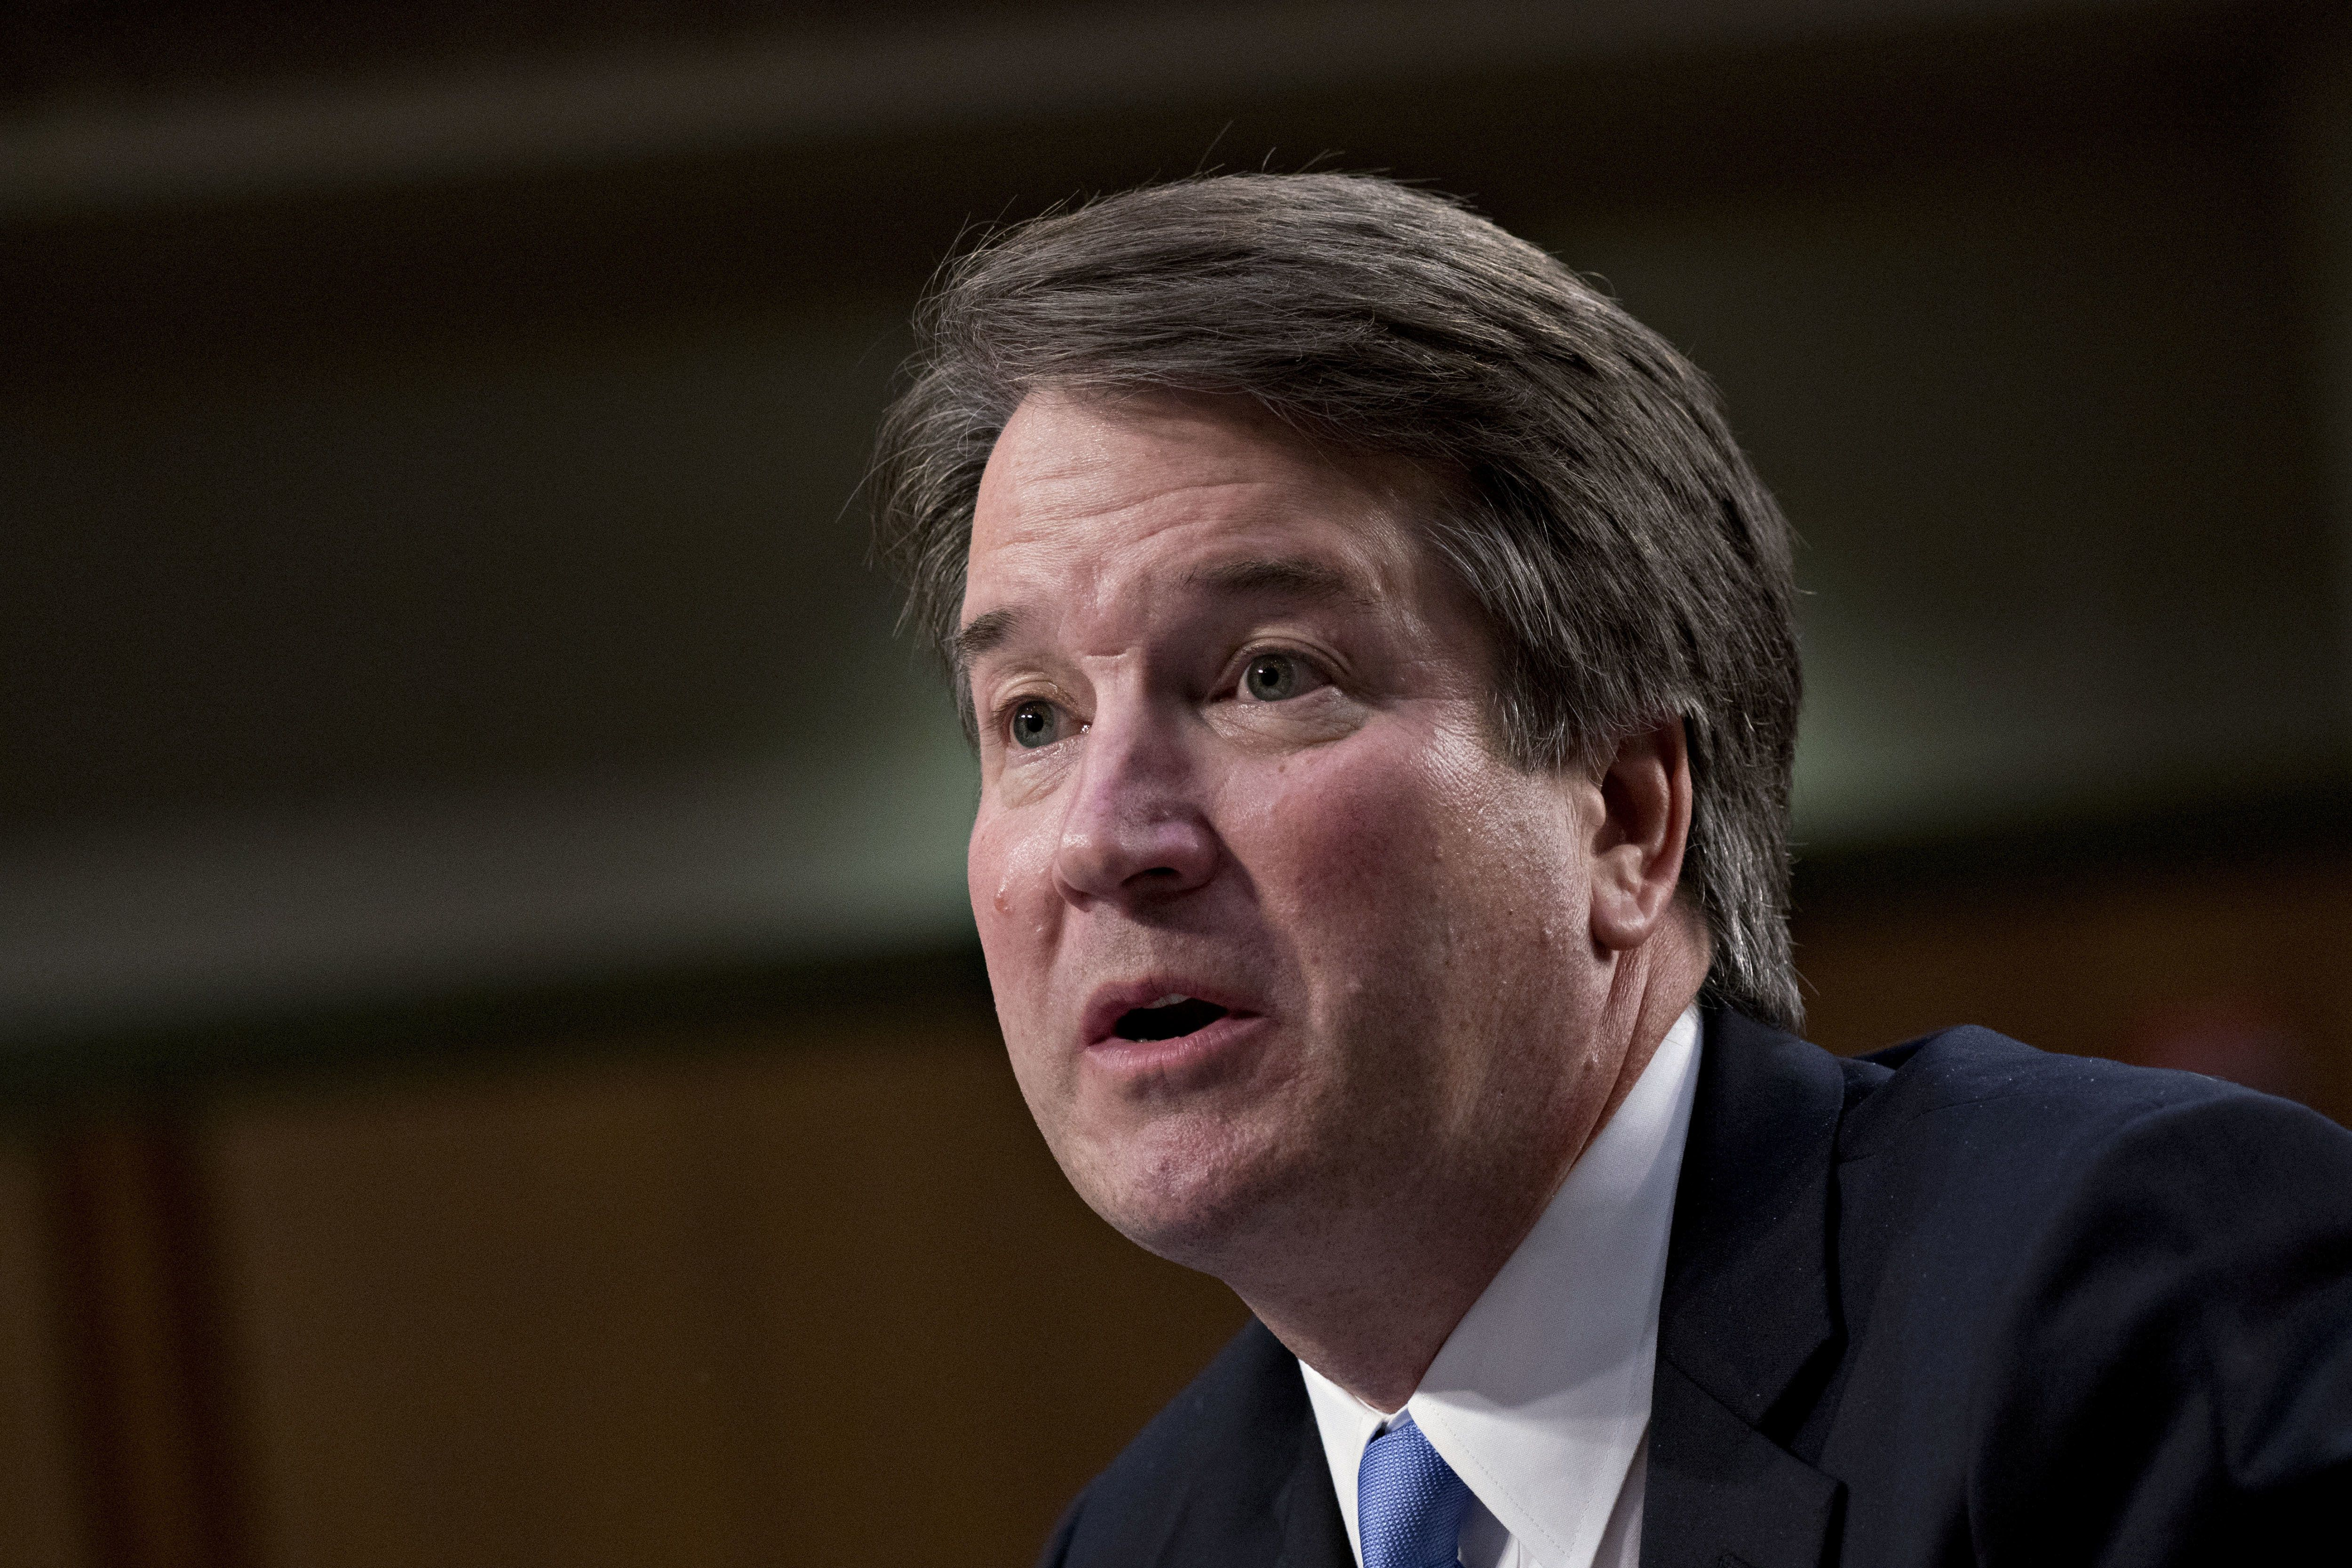 Brett Kavanaugh, U.S. Supreme Court associate justice nominee for U.S. President Donald Trump, speaks during a Senate Judiciary Committee confirmation hearing in Washington, D.C., U.S., on Thursday, Sept. 6, 2018. Kavanaugh yesterday steered clear of trouble in a marathon day before a Senate panel, refusing to say whether he would overturn the constitutional right to abortion or disqualify himself from any case directly involving Trump. Photographer: Andrew Harrer/Bloomberg via Getty Images